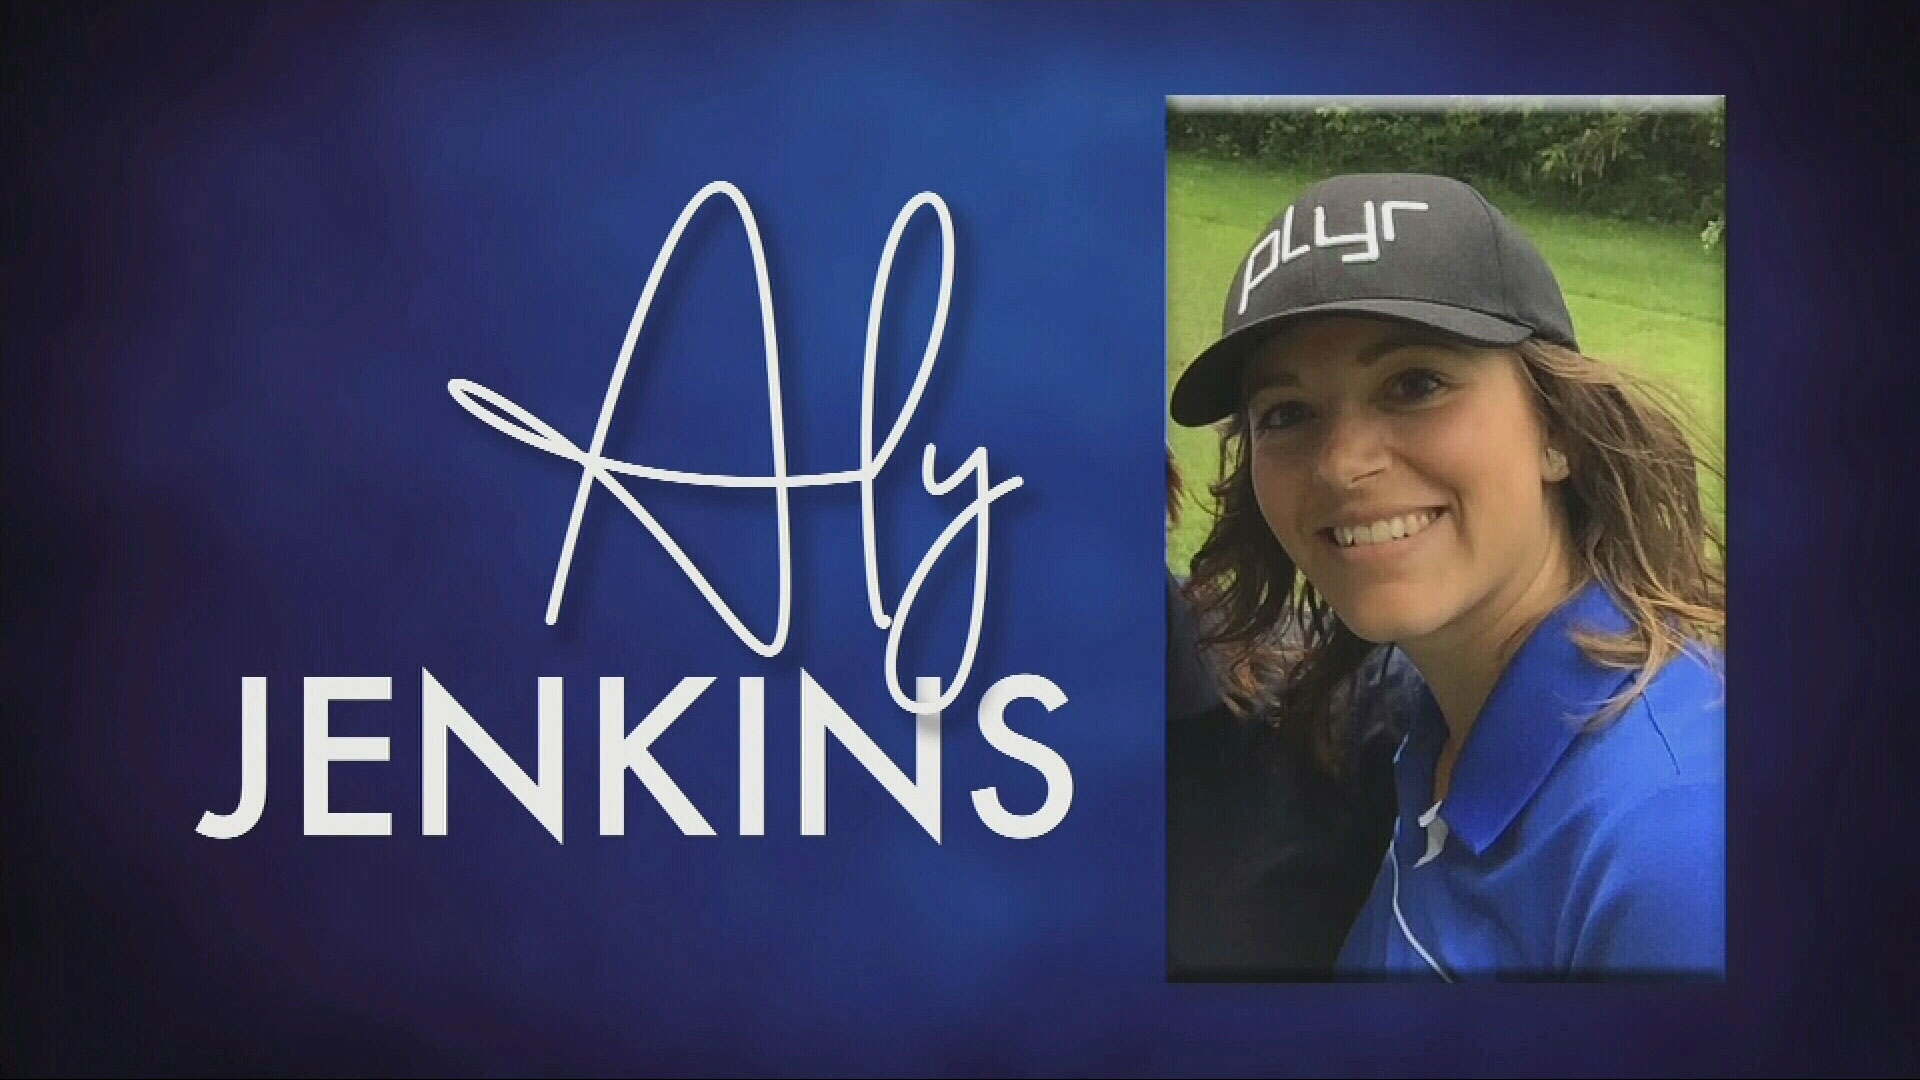 Aly Jenkins honoured at Scotties Tournament of Hearts